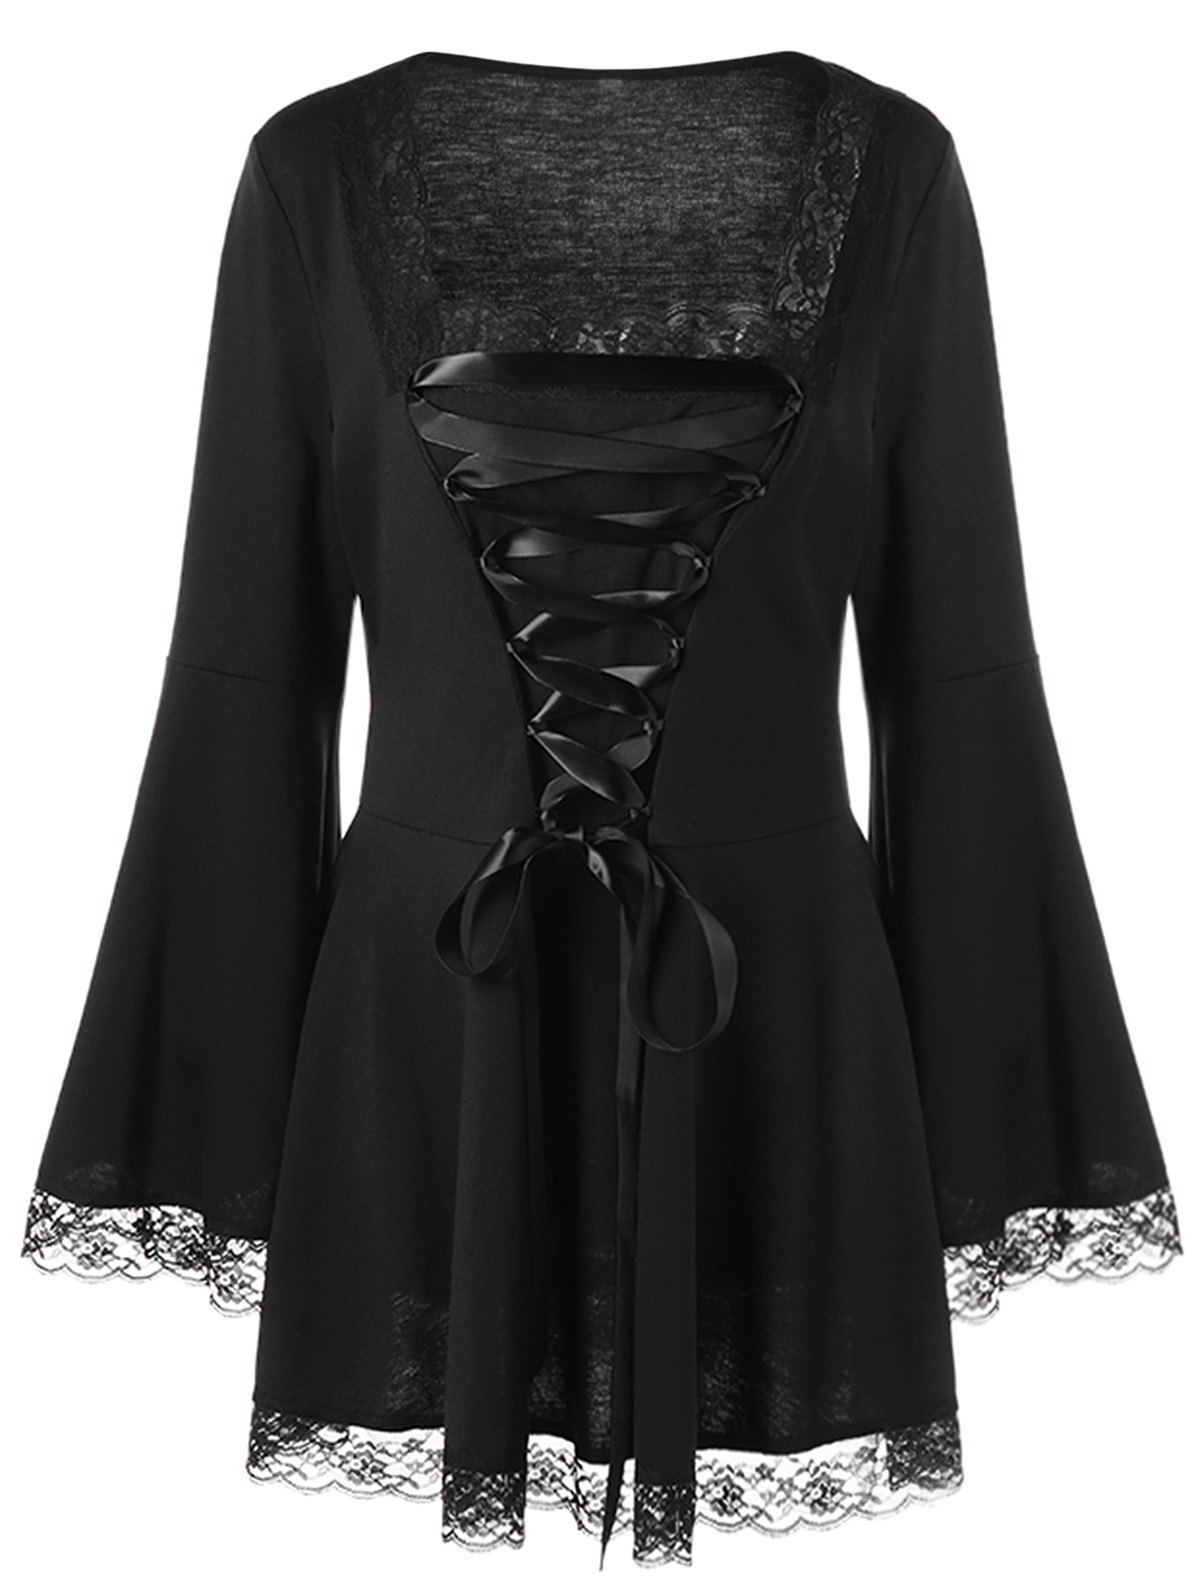 Halloween Plus Size Lace Up Bell Sleeve TopWOMEN<br><br>Size: 3XL; Color: BLACK; Material: Polyester,Spandex; Shirt Length: Long; Sleeve Length: Full; Collar: Square Neck; Style: Casual; Season: Fall,Spring; Embellishment: Lace; Pattern Type: Solid; Weight: 0.3700kg; Package Contents: 1 x Top;